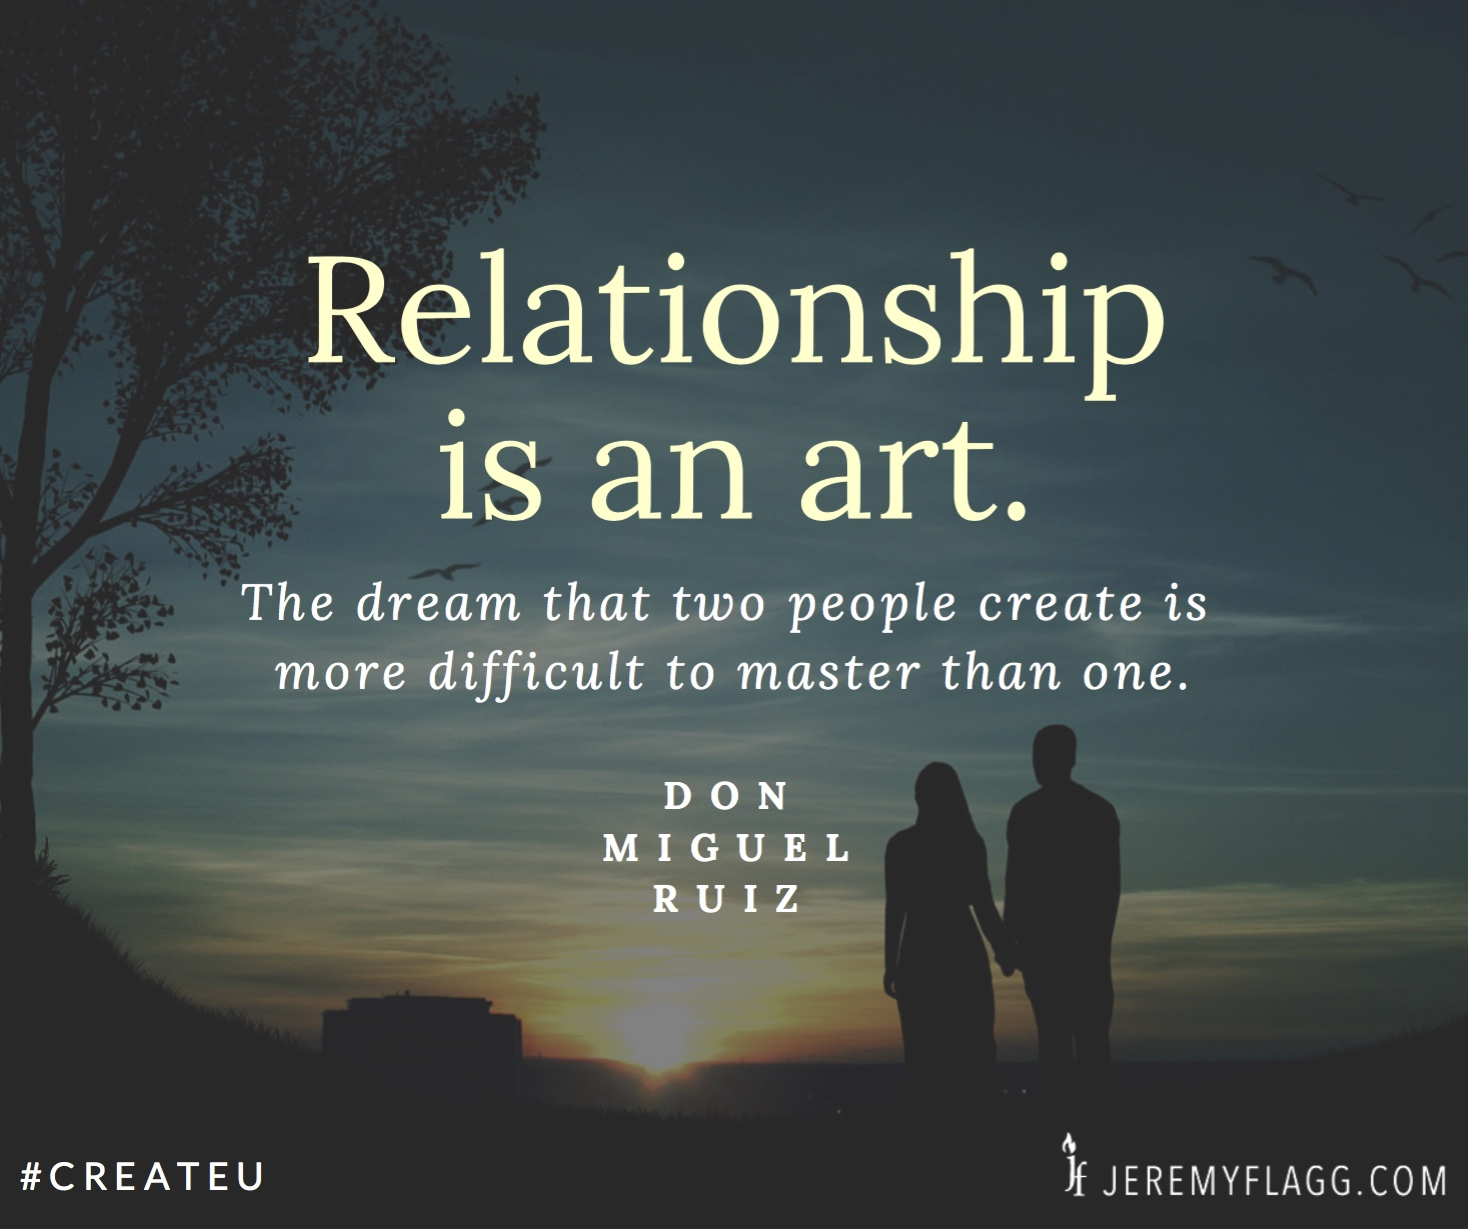 Relationship-is-an-art-Don-Miguel-Ruiz-FB